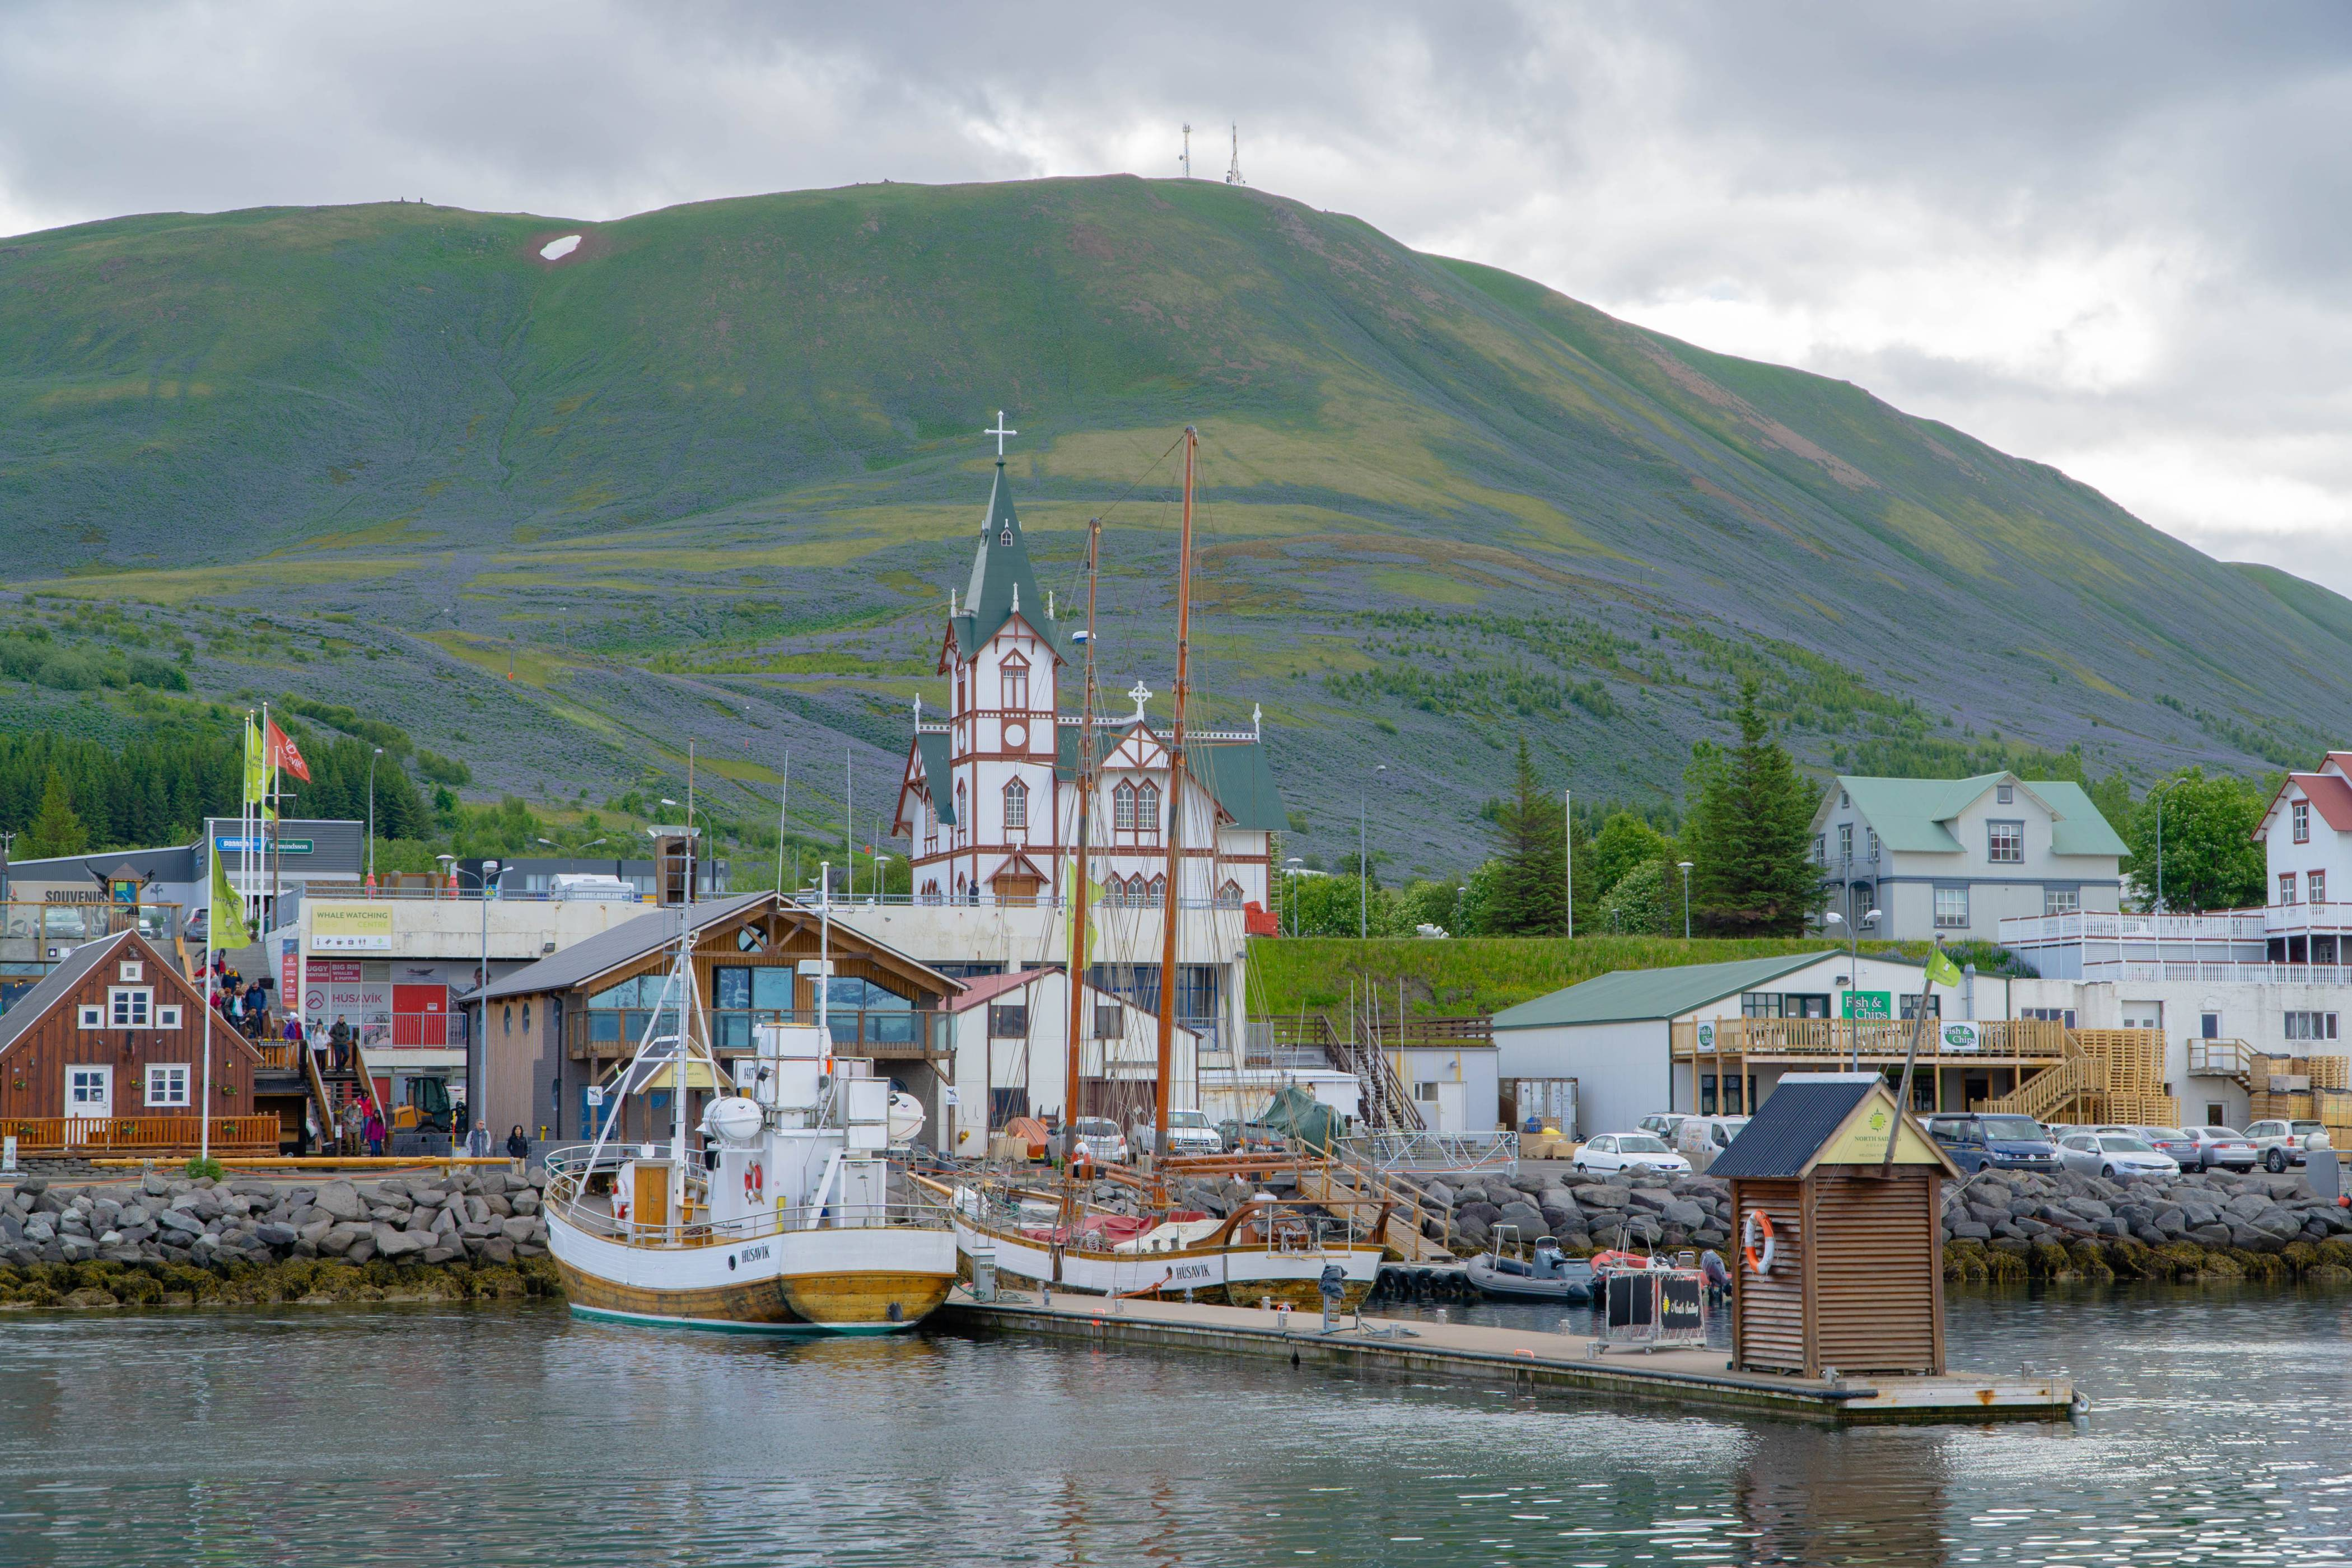 Husavik-harbor-with-two-small-boats-seen-from-the-ocean-with-husavik-church-in-the-background-on-a-summer-day